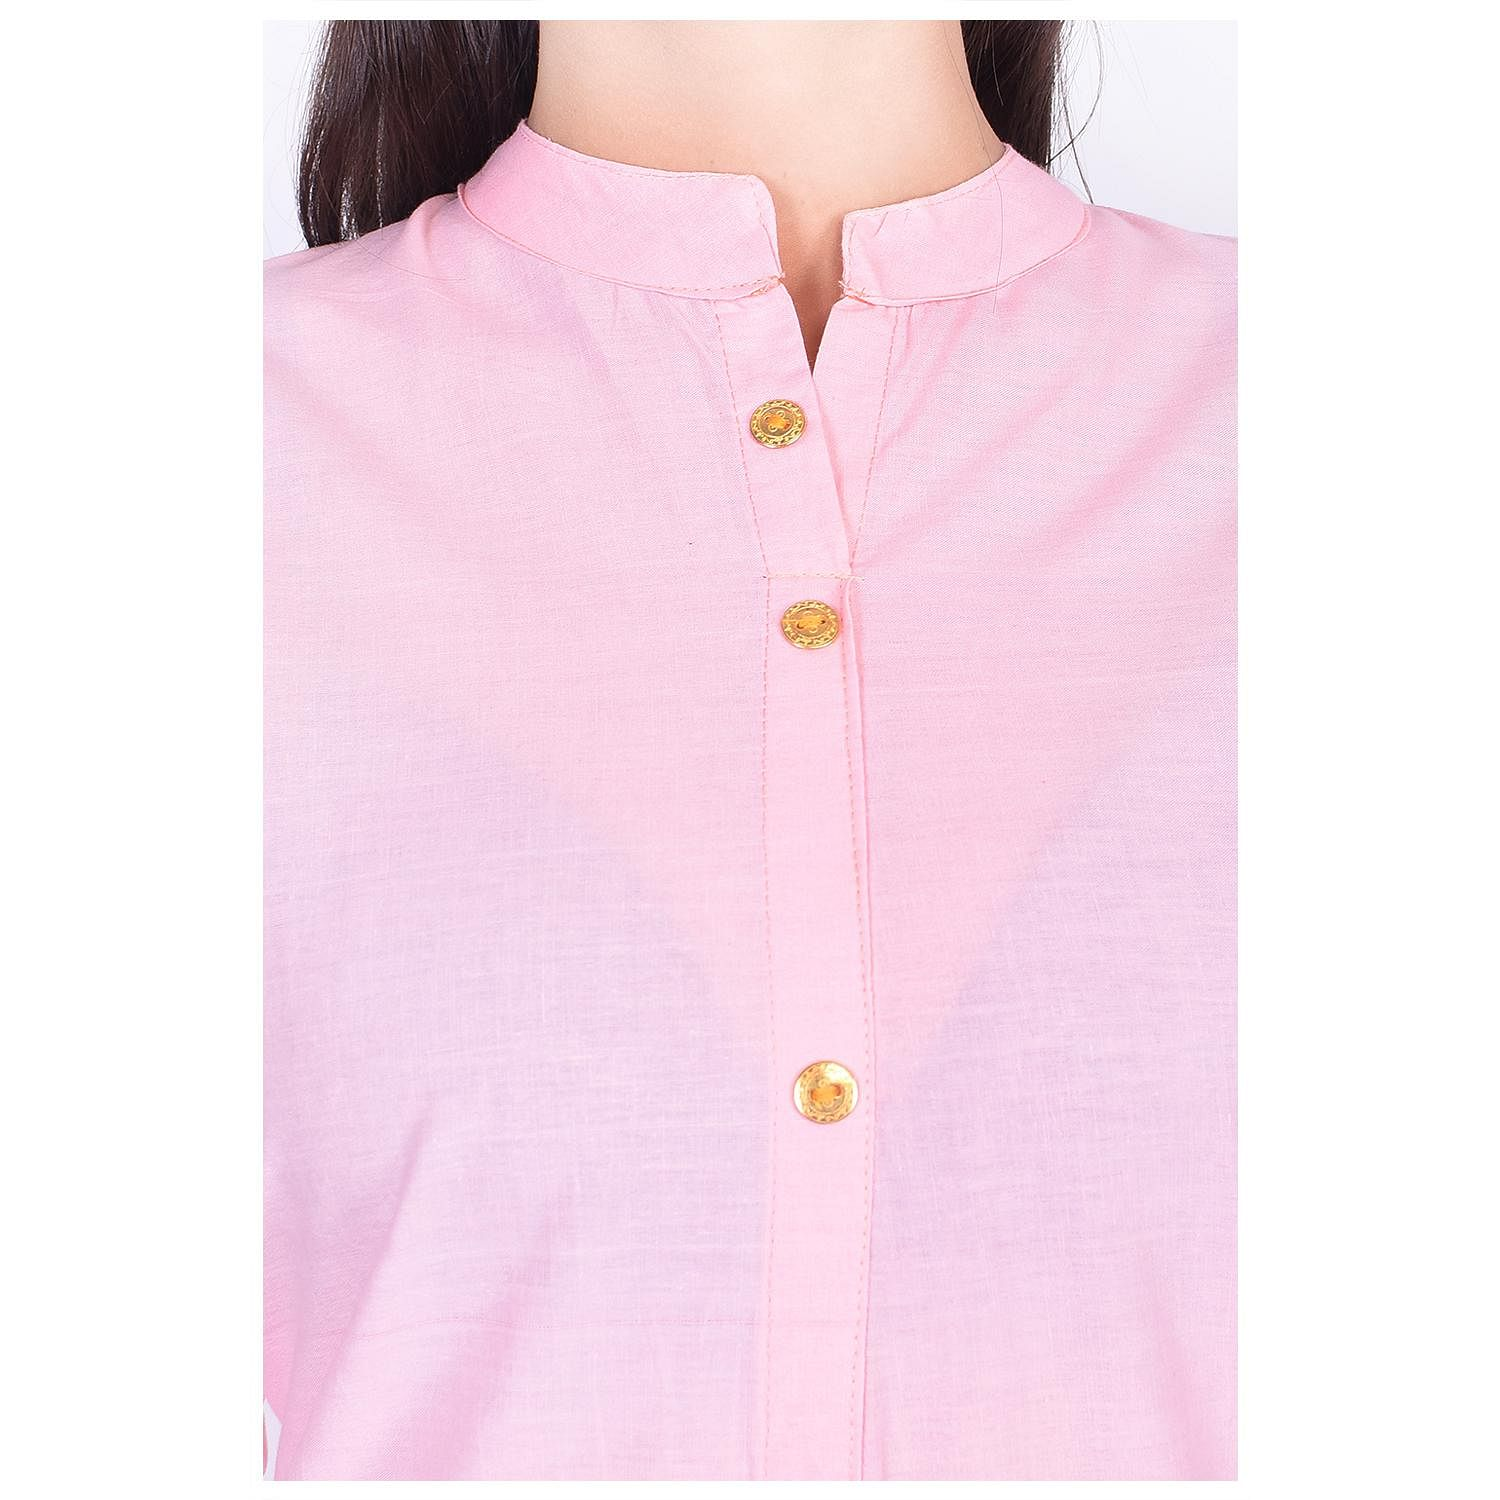 Pooja Fashion - Pink Colored Casual Solid Cotton Kurti